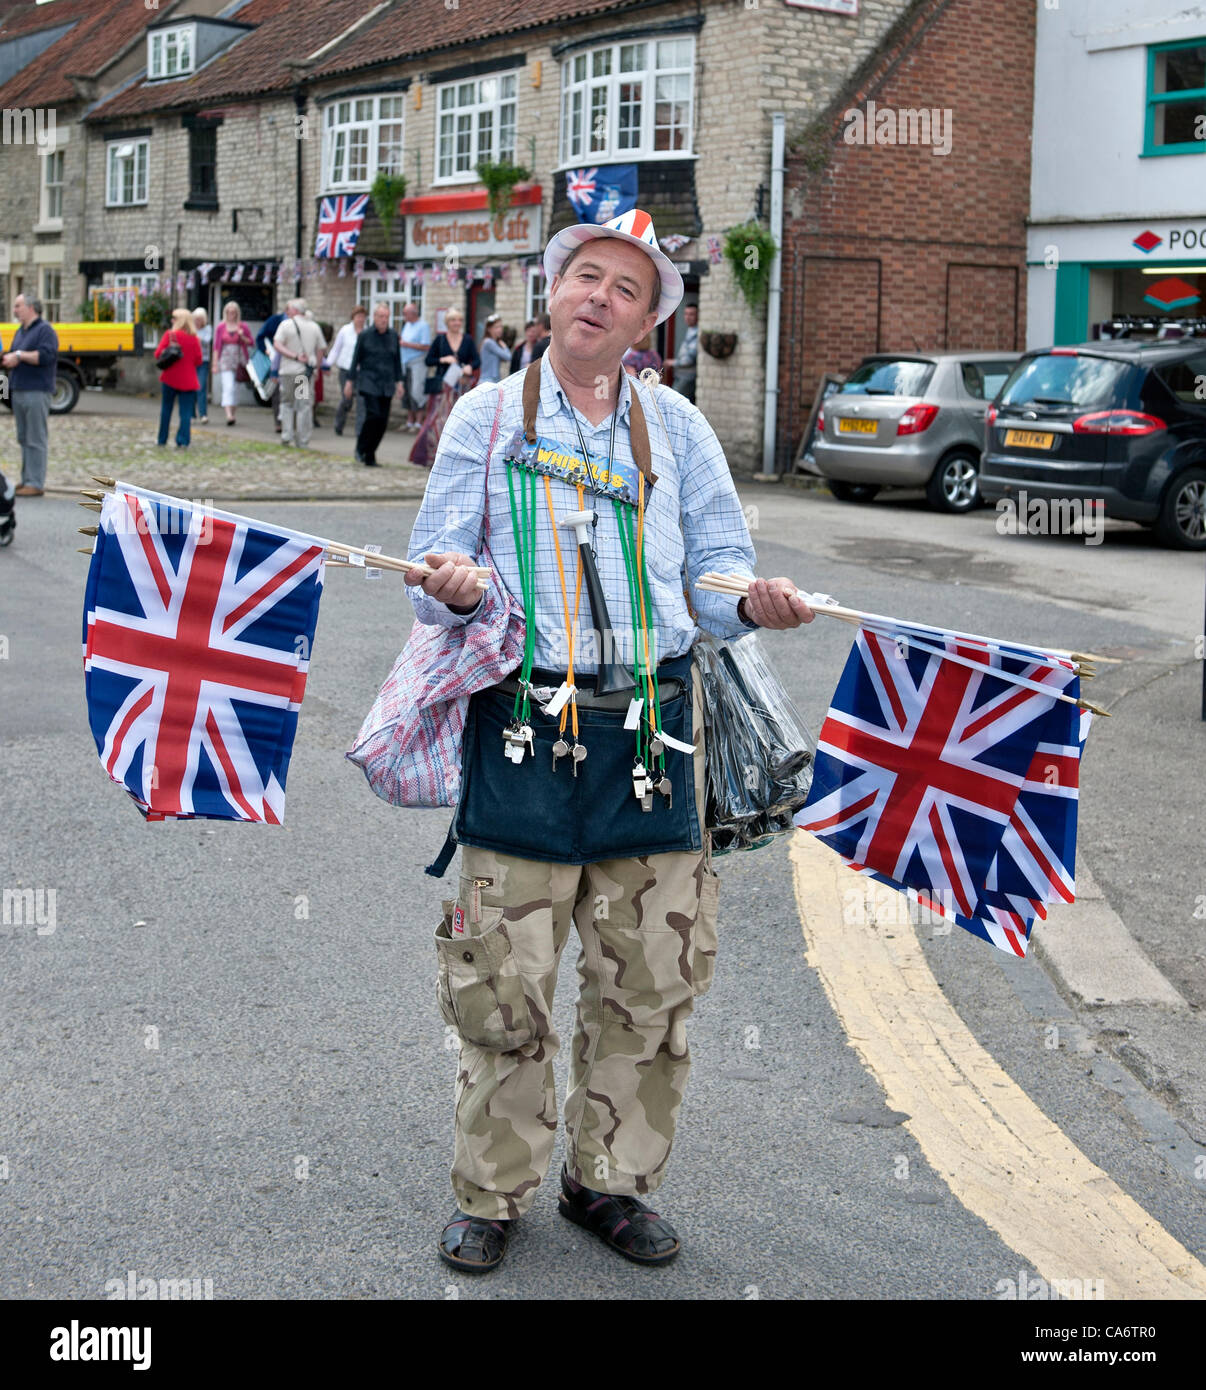 A flag seller in Pickering plies his wares at Pickering during the Olympic torch relay - Stock Image